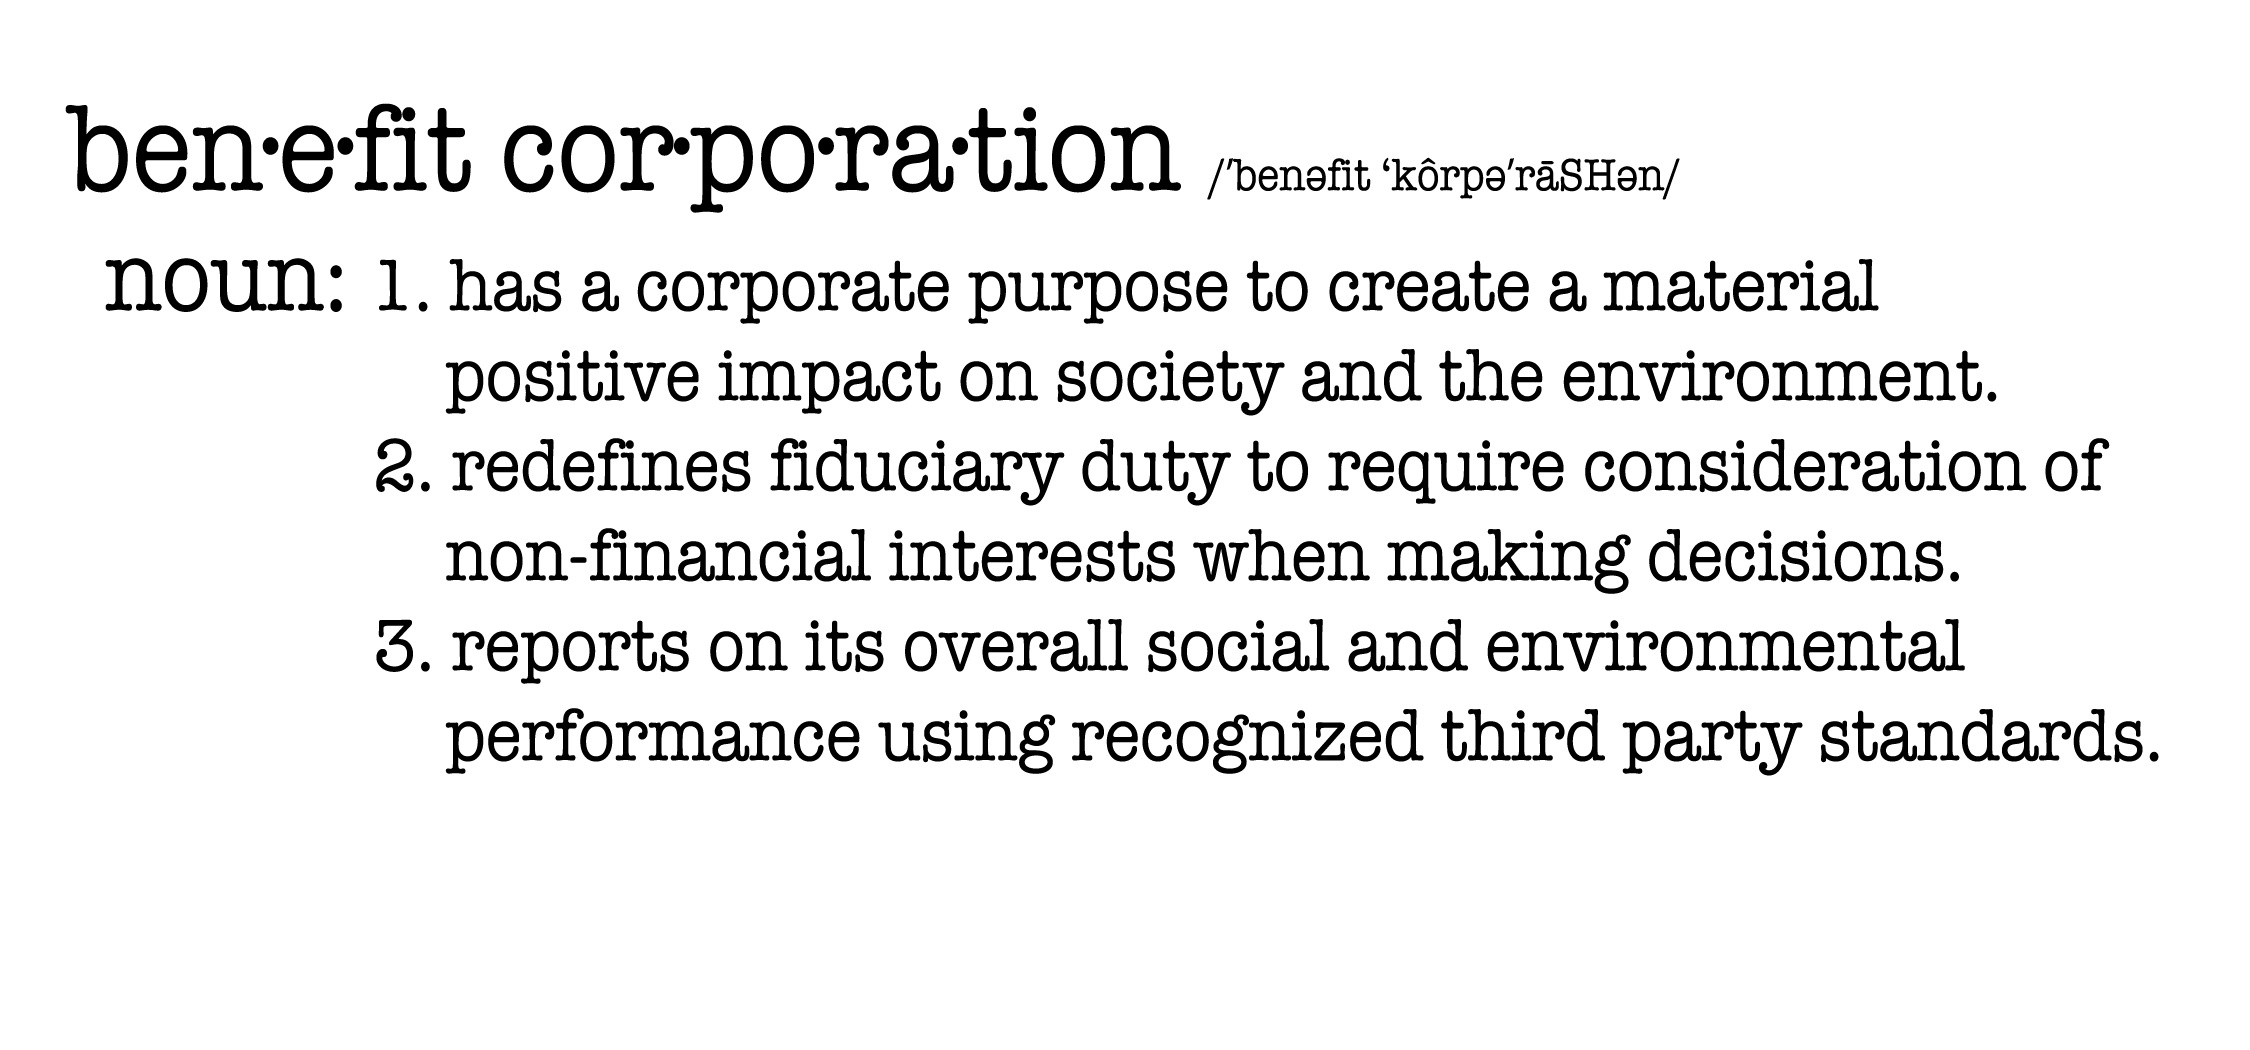 Note: We are not yet a certified Benefit Corporation, but we would like to be one day. In the mean time we still honor the ideals behind the legal status